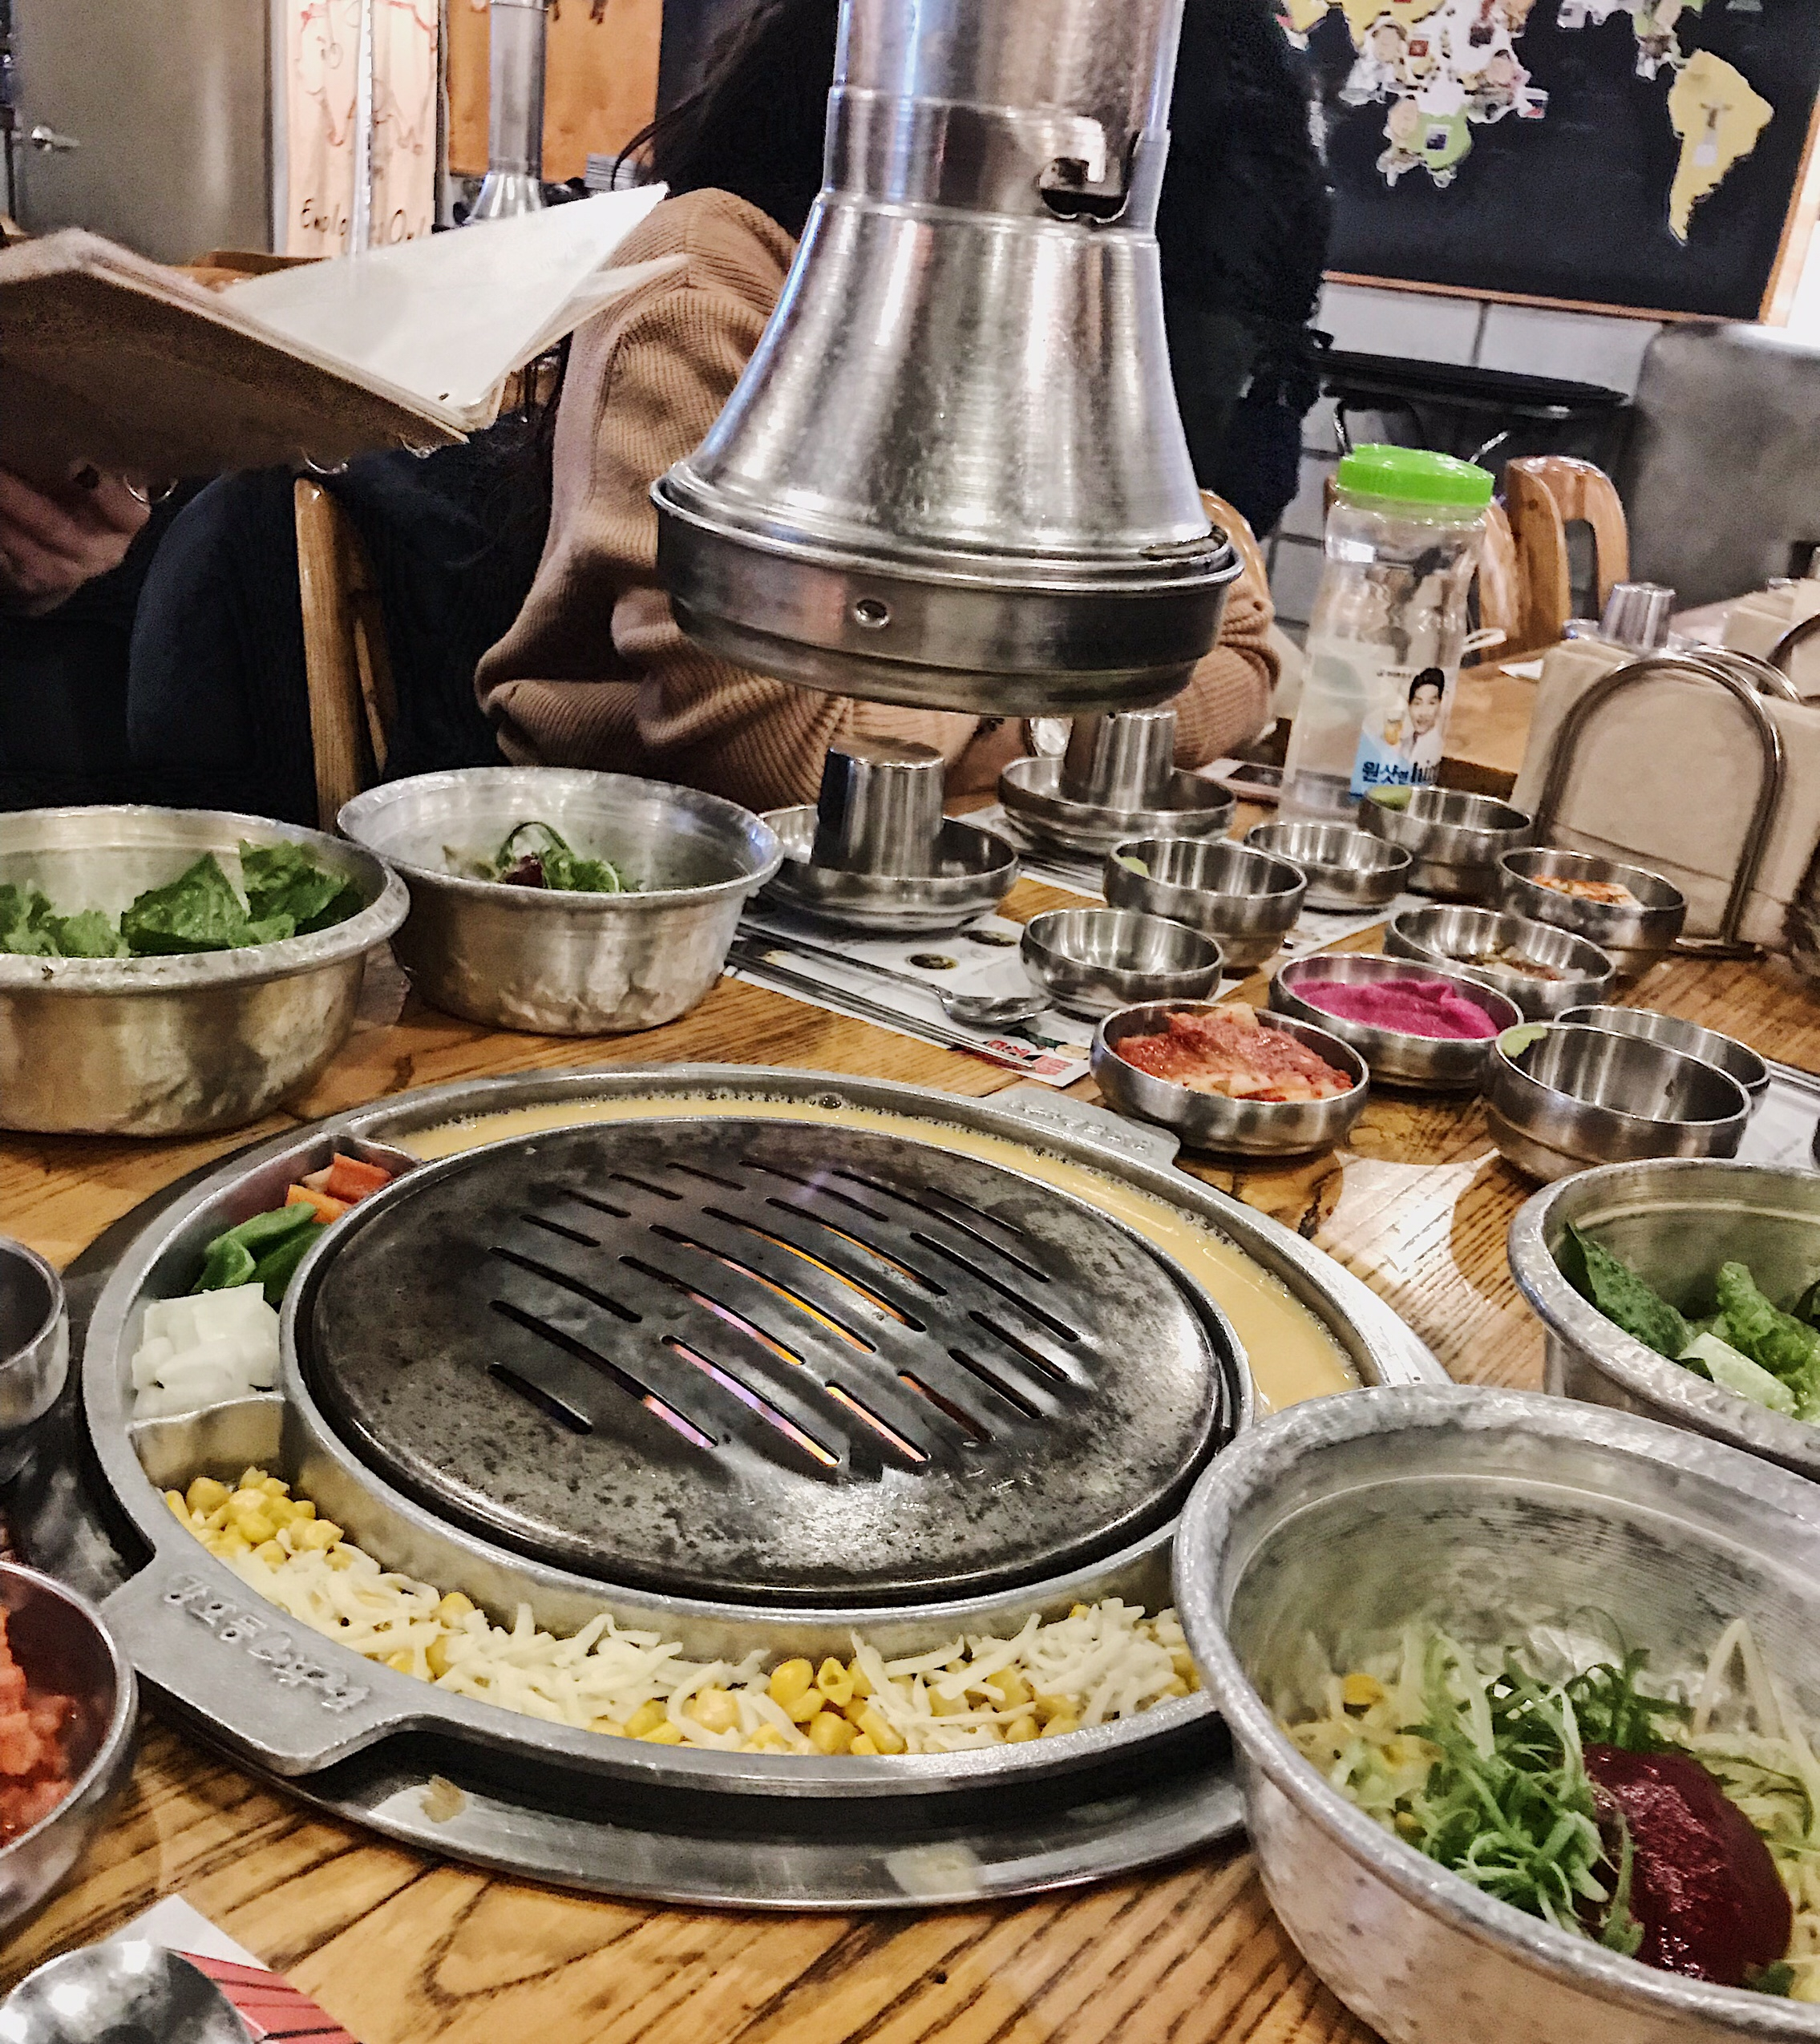 image of Korean food being cooked Food of New York